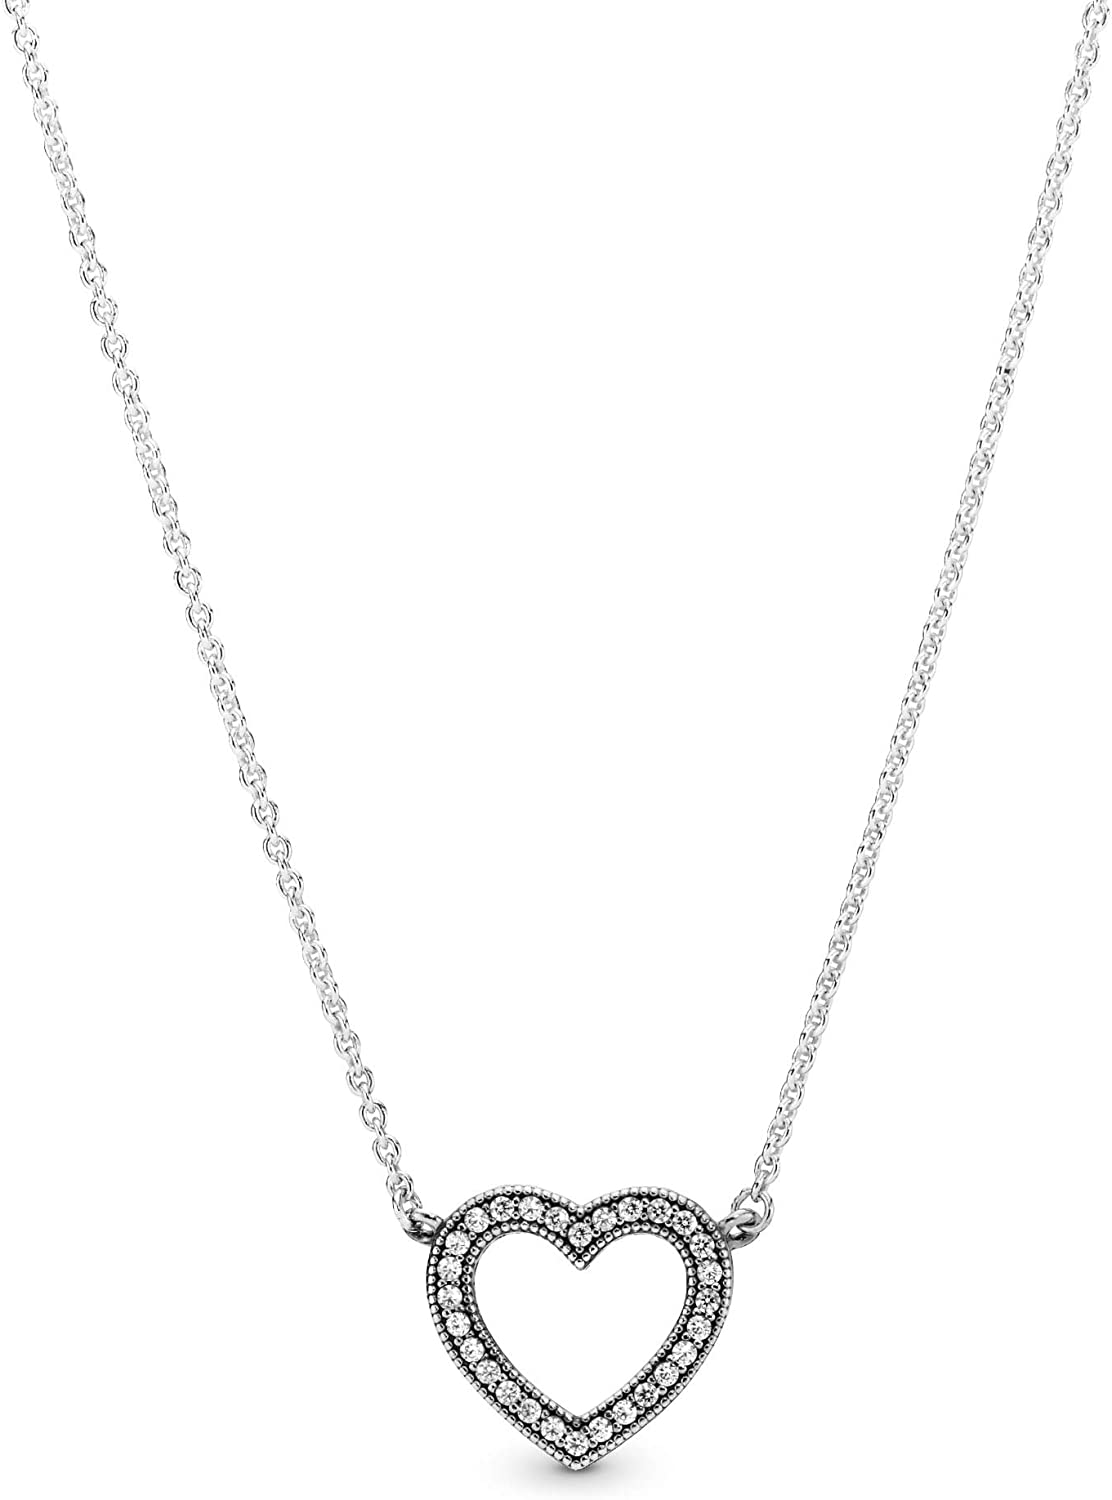 Amazon Com Pandora Jewelry Sparkling Open Heart Cubic Zirconia Necklace In Sterling Silver 17 7 Jewelry